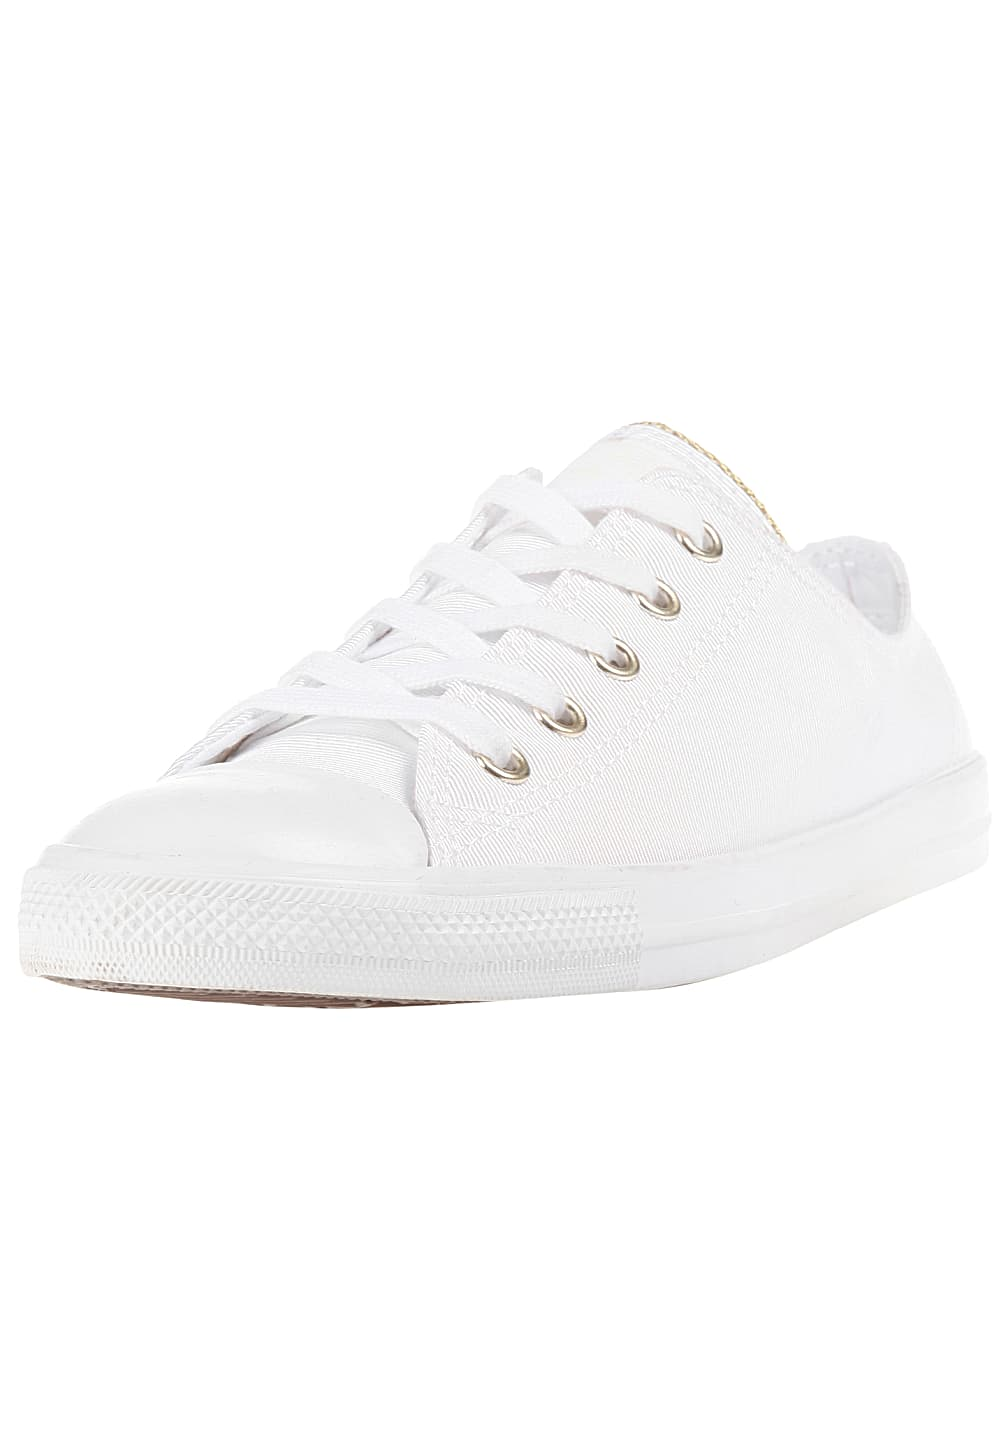 converse mujer chuck taylor all stars dainty ox